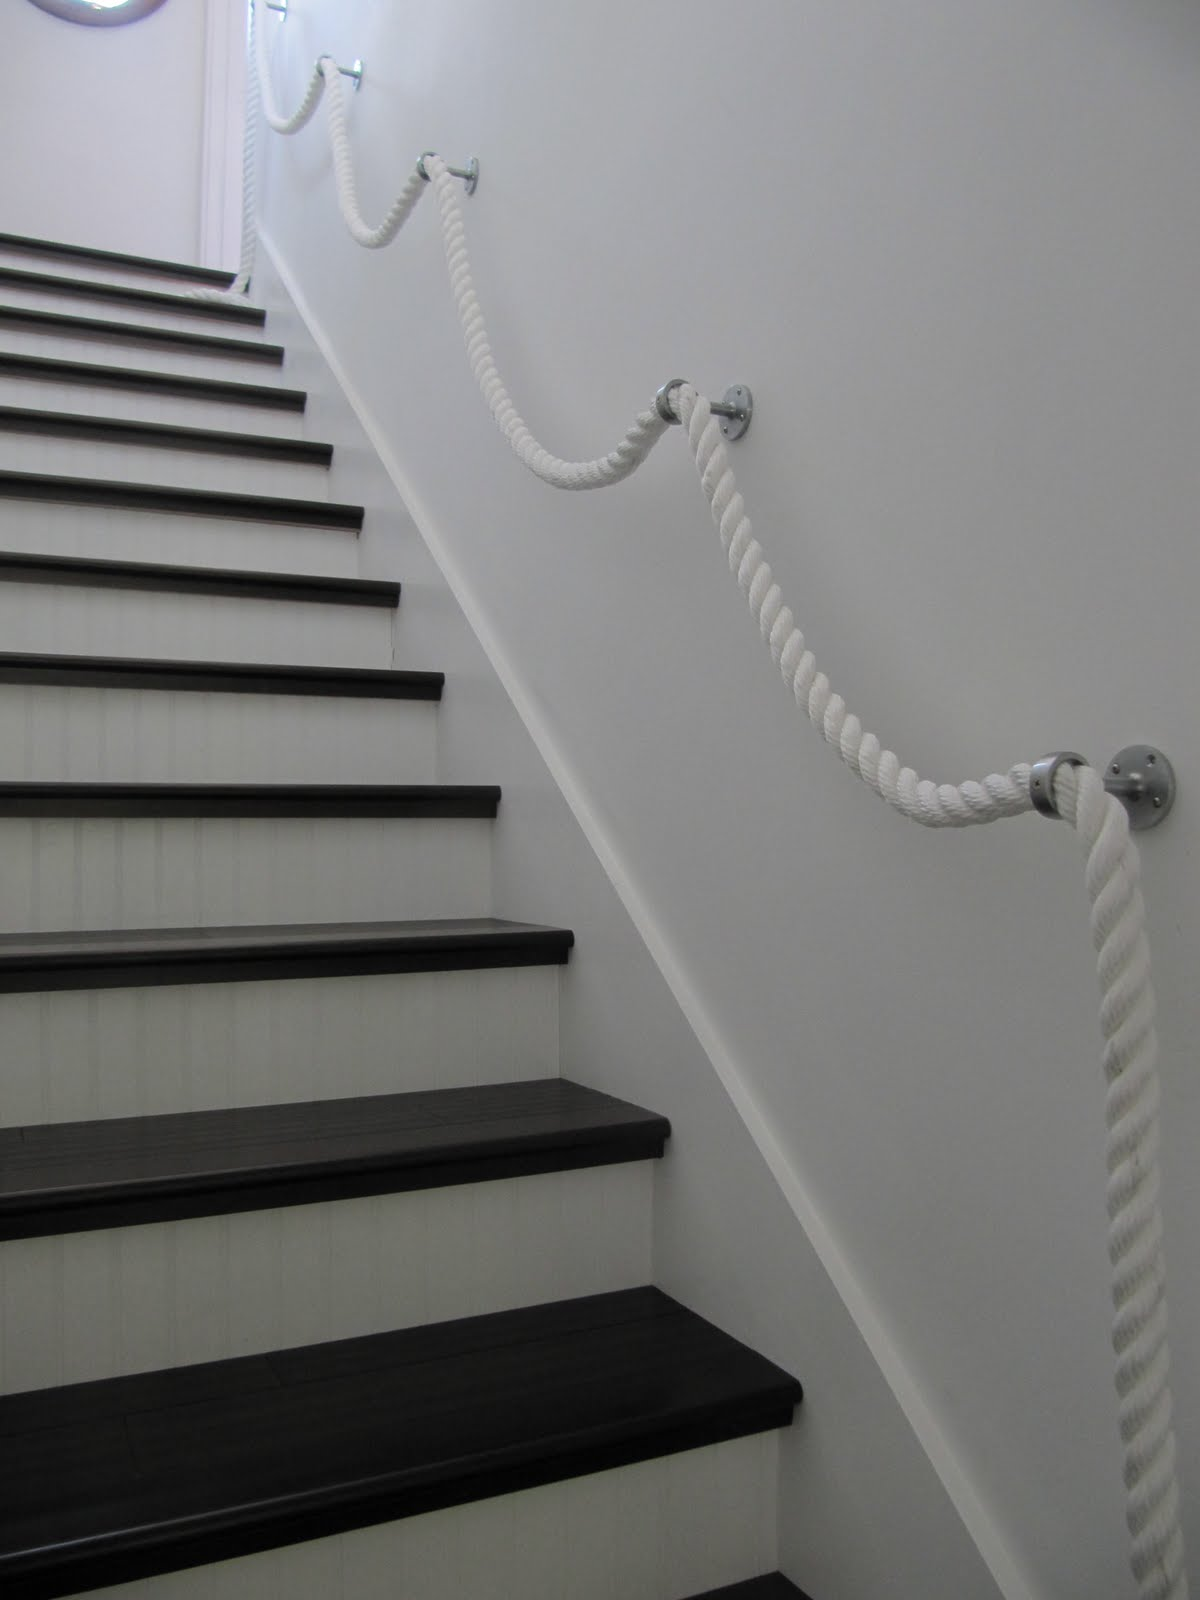 laurie's-projects: Stair Rope Banister